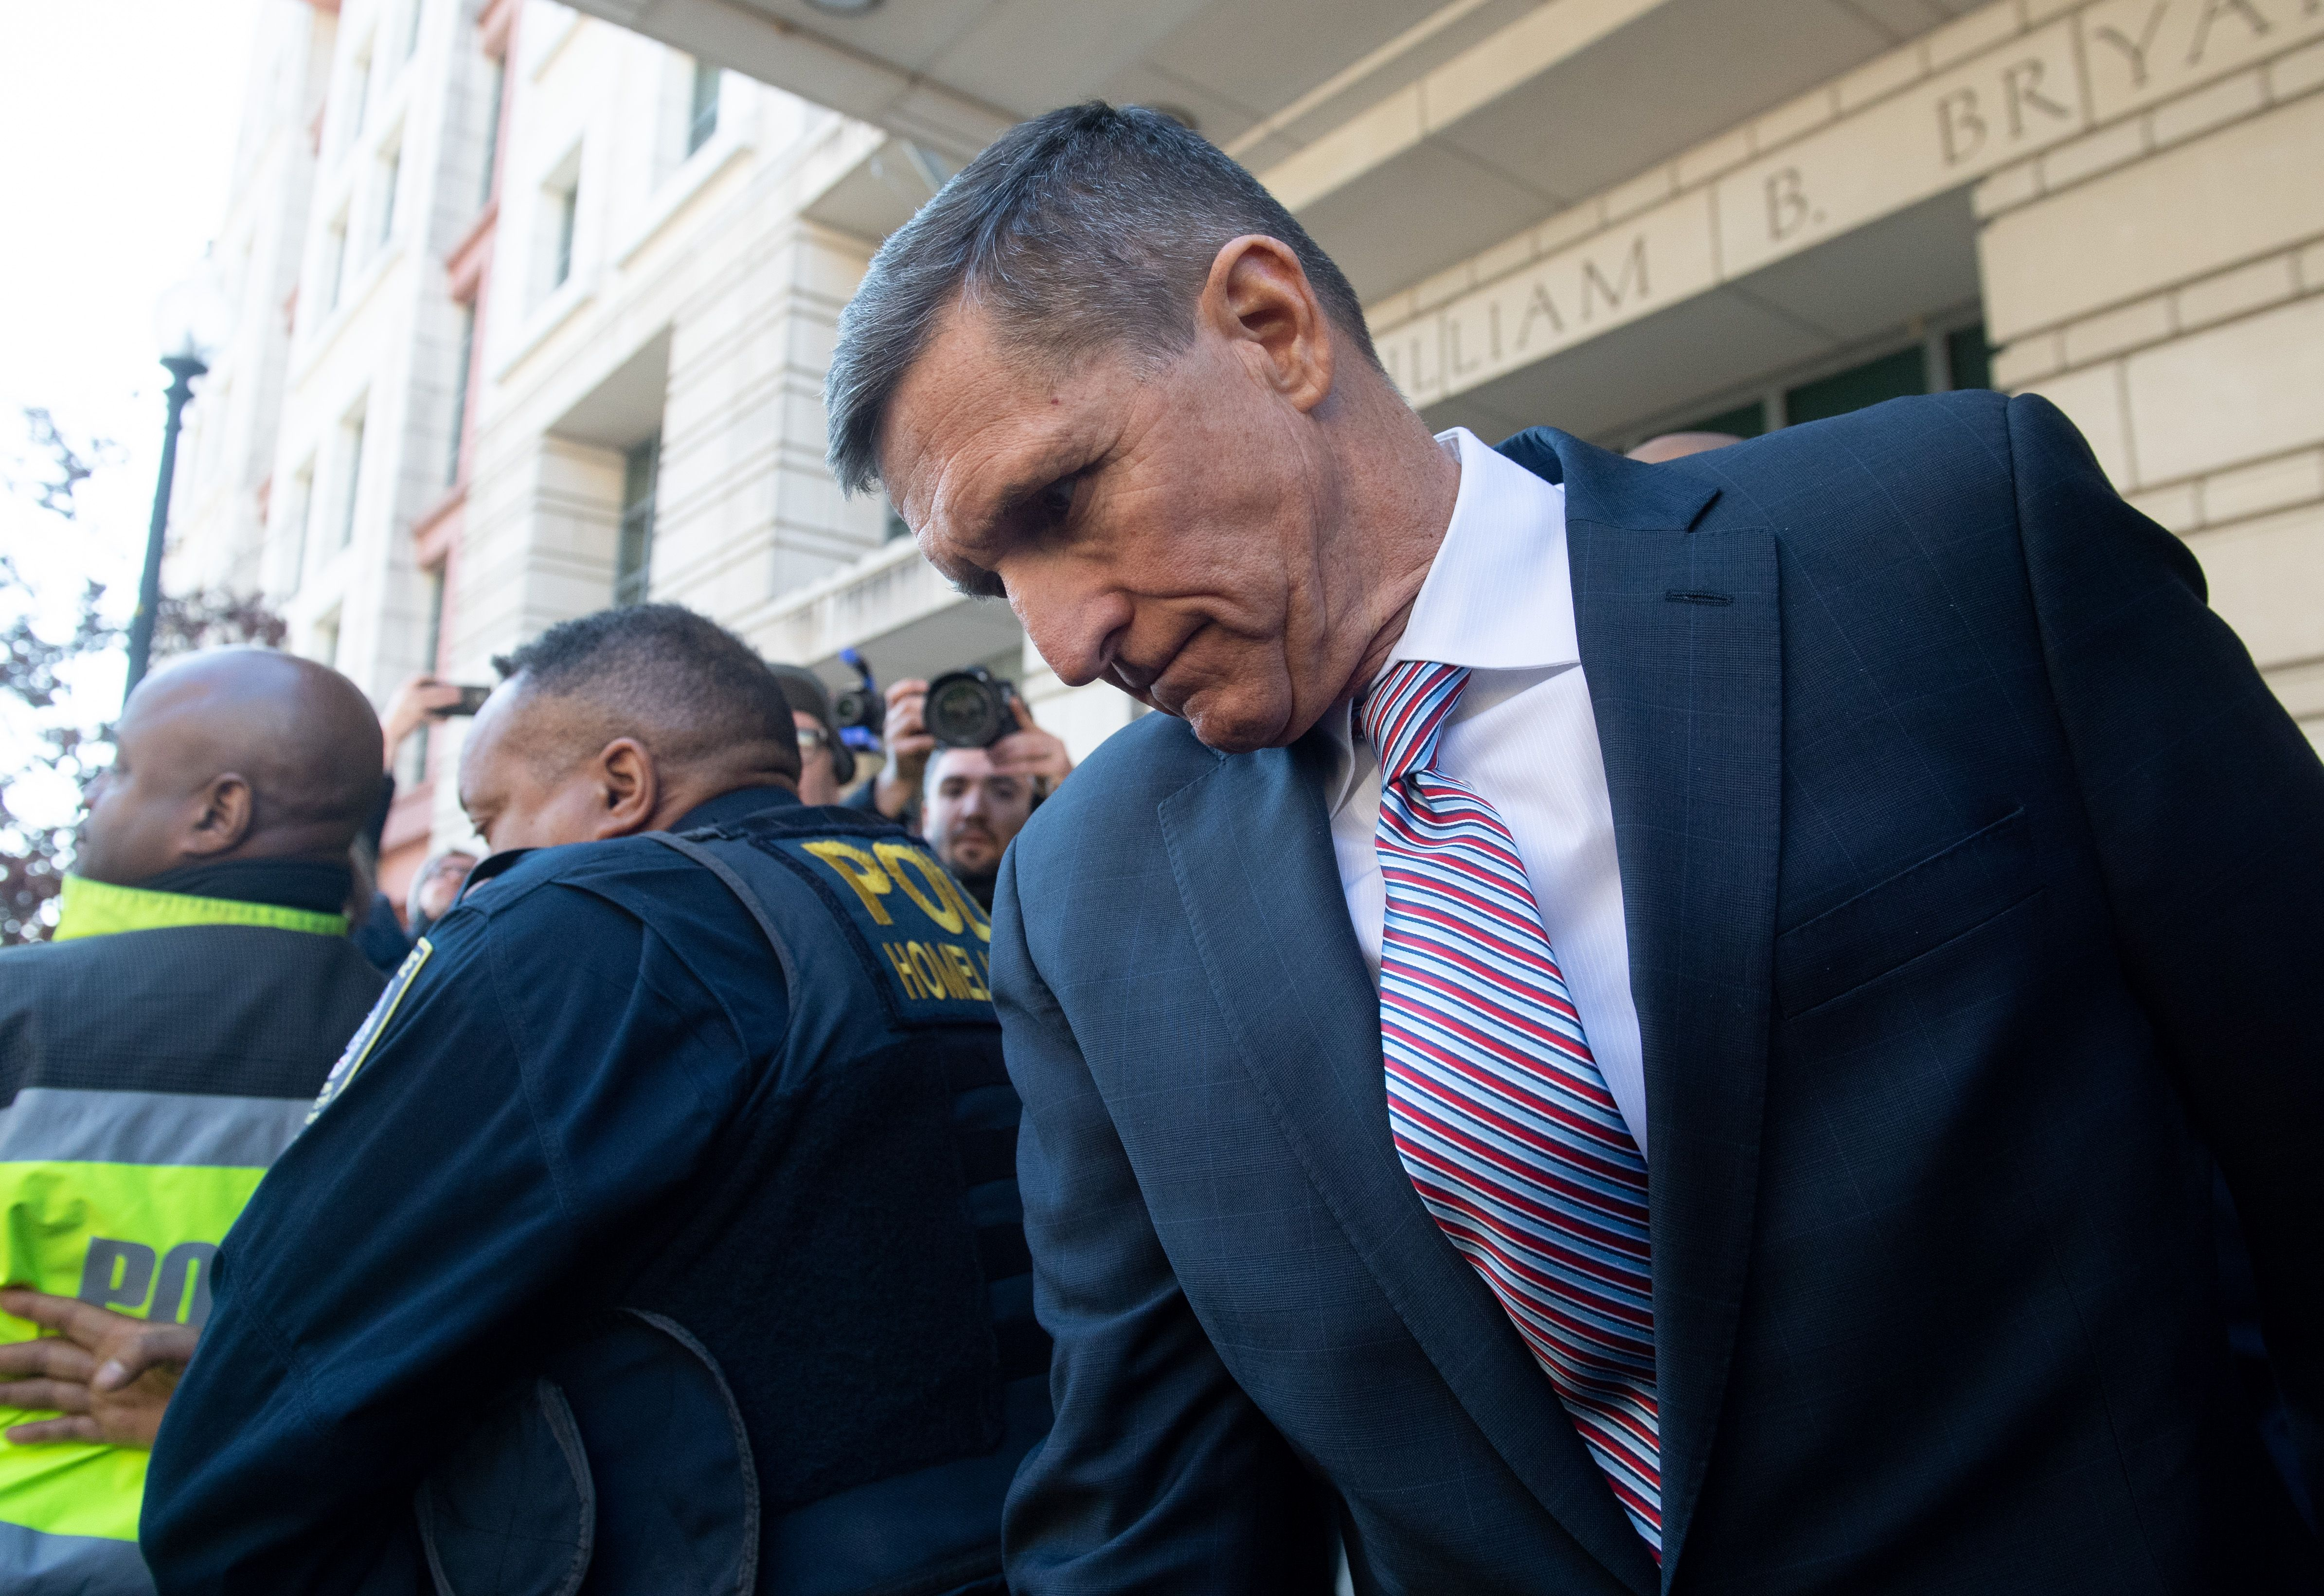 "Former National Security Advisor General Michael Flynn leaves after the delay in his sentencing hearing at US District Court in Washington, DC, December 18, 2018. - President Donald Trump's former national security chief Michael Flynn received a postponement of his sentencing after an angry judge threatened to give him a stiff sentence. Russia collusion investigation head Robert Mueller had proposed Flynn receive no jail time for lying to investigators about his Moscow ties. But Judge Emmet Sullivan said Flynn had behaved in a ""traitorous"" manner and gave the former three-star general the option of receiving a potentially tough prison sentence now -- or wait until Mueller's investigation was closer to being completed to better demonstrate his cooperation with investigators. (Photo by SAUL LOEB / AFP) (Photo credit should read SAUL LOEB/AFP via Getty Images)"